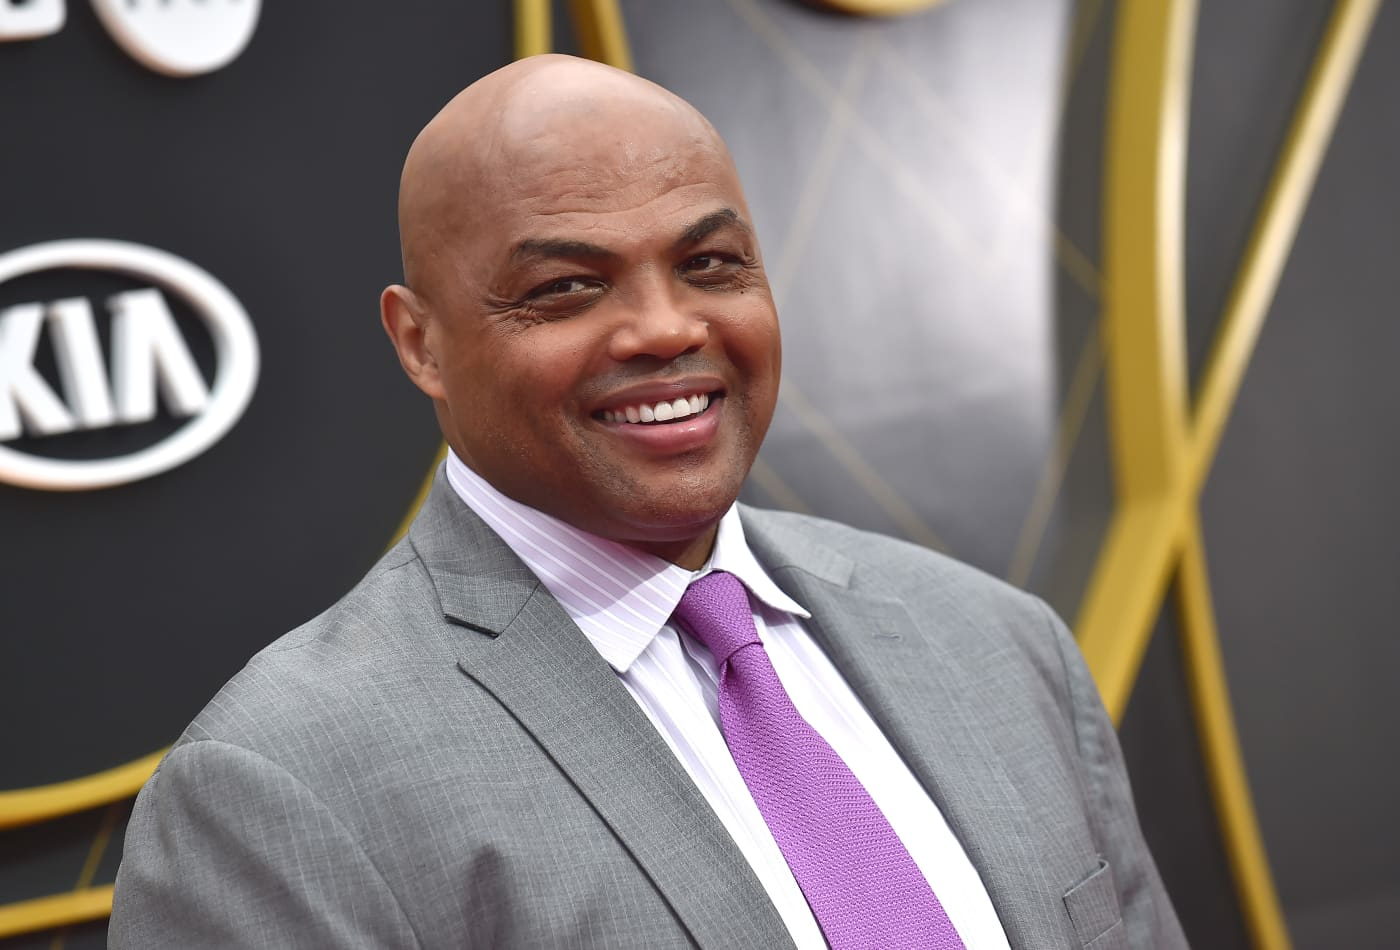 Charles Barkley: Sports are turning social justice issues into a 'circus'